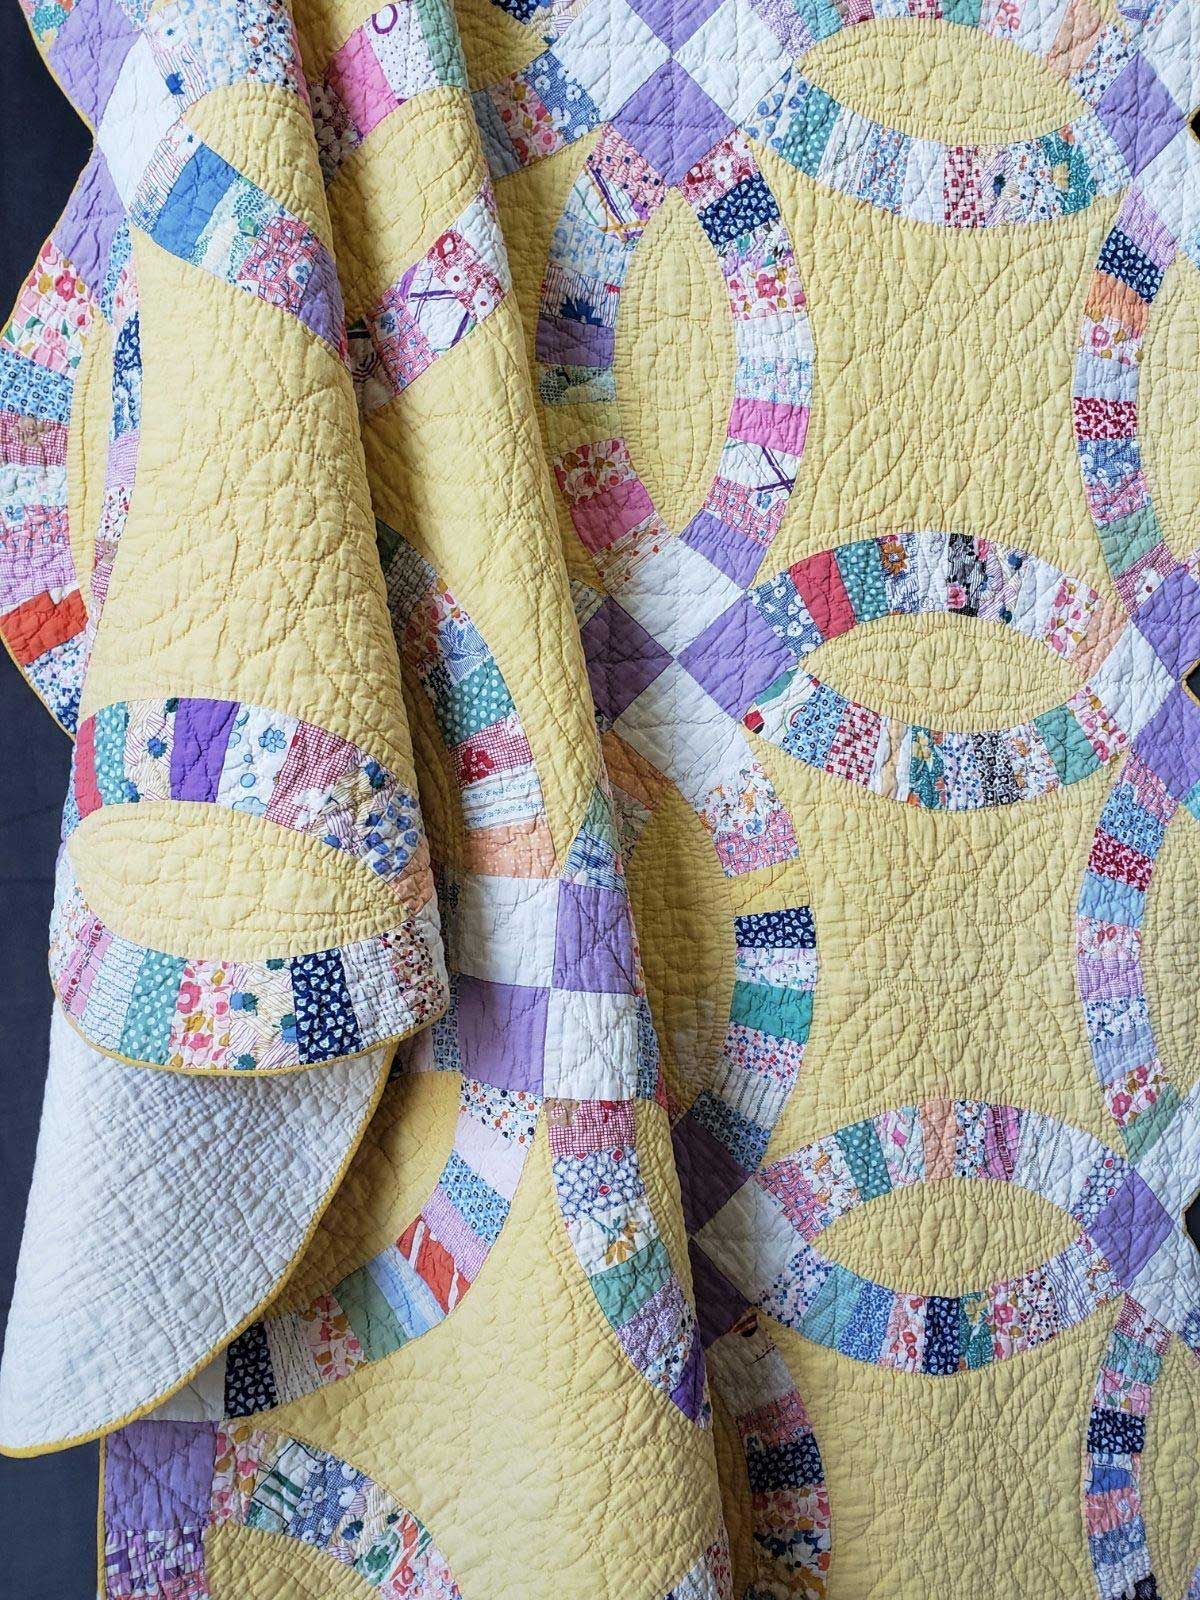 Vintage Wedding Ring Quilt Ideas 058 From 44 Awesome Vintage Wedding Ring Quilt Ideas Wedding Rings Vintage Wedding Ring Quilt Quilts